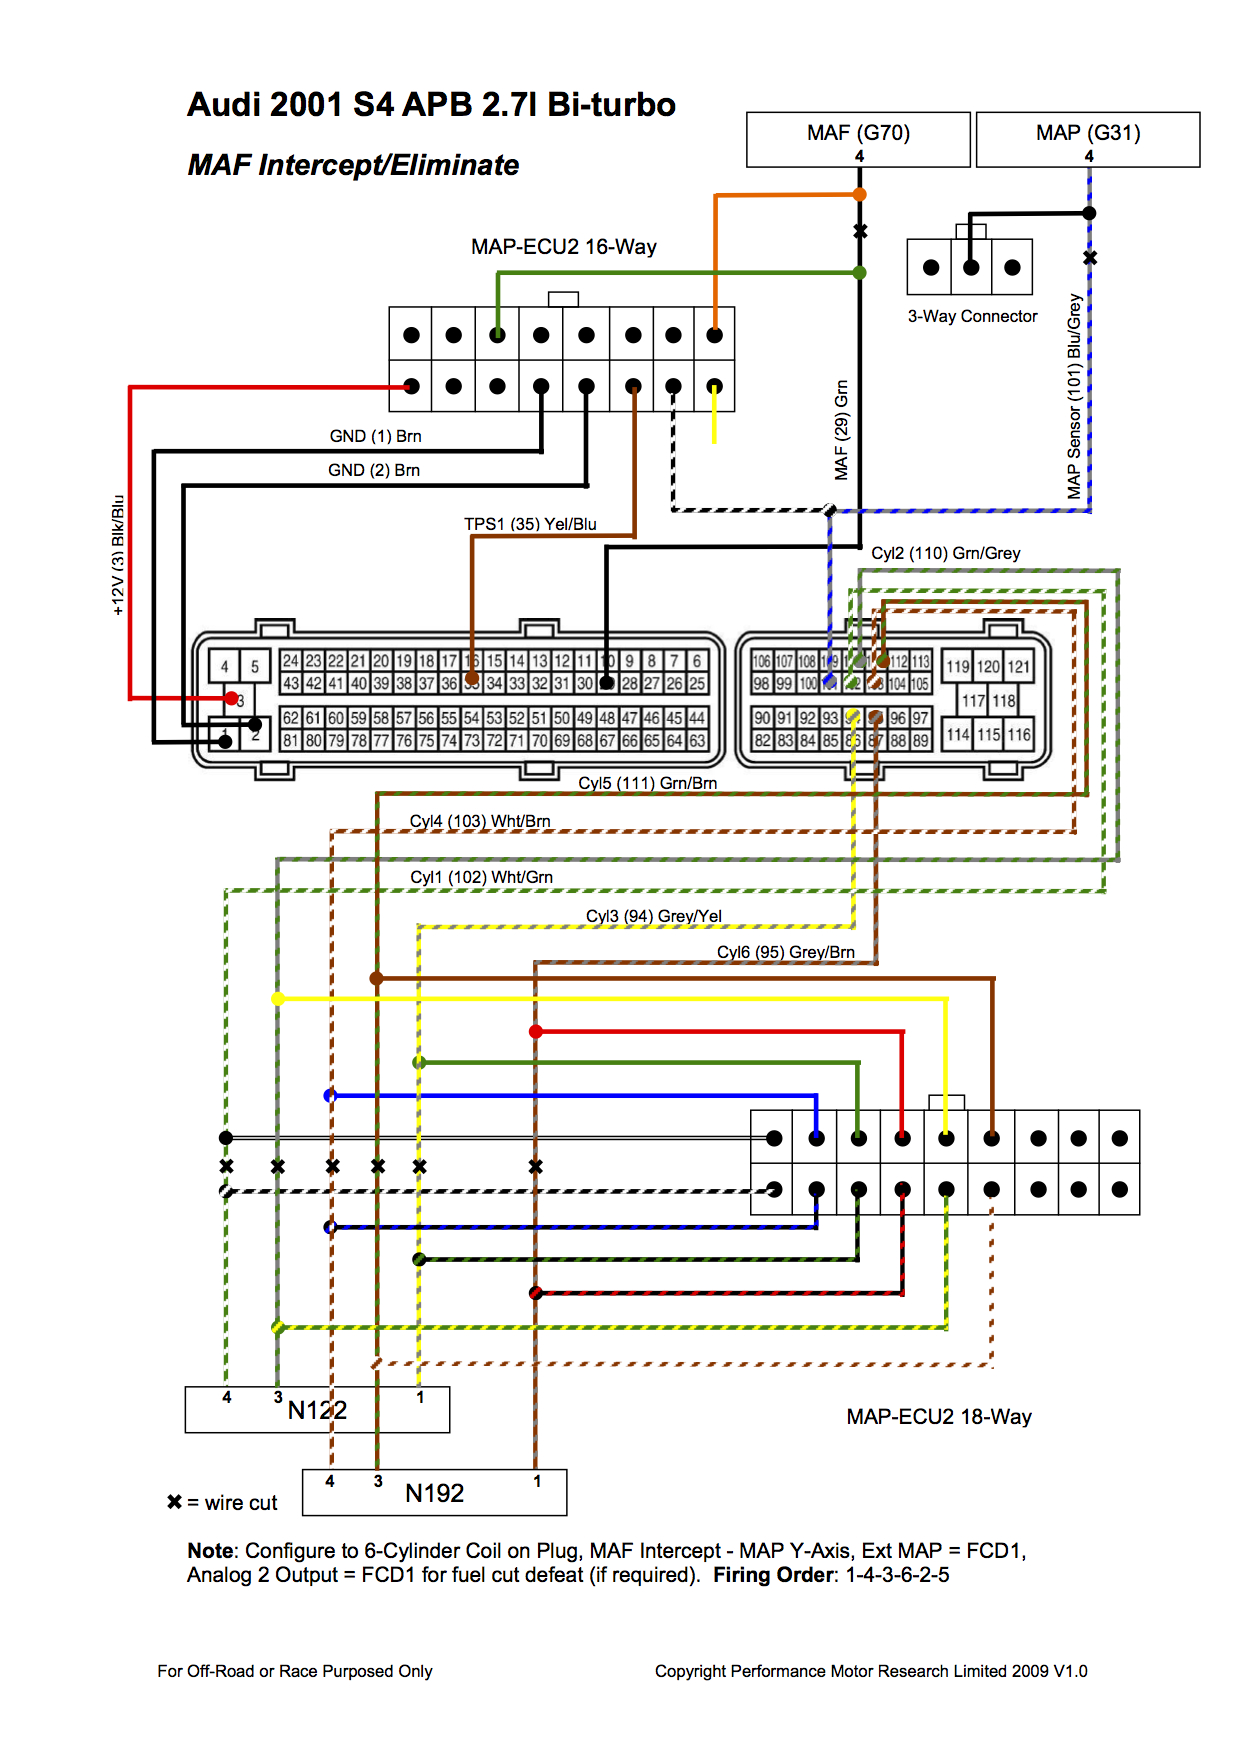 Audi S4 20011 ecu wiring diagram paccar ecu wiring diagram \u2022 wiring diagrams j vw polo 2010 wiring diagram pdf at aneh.co